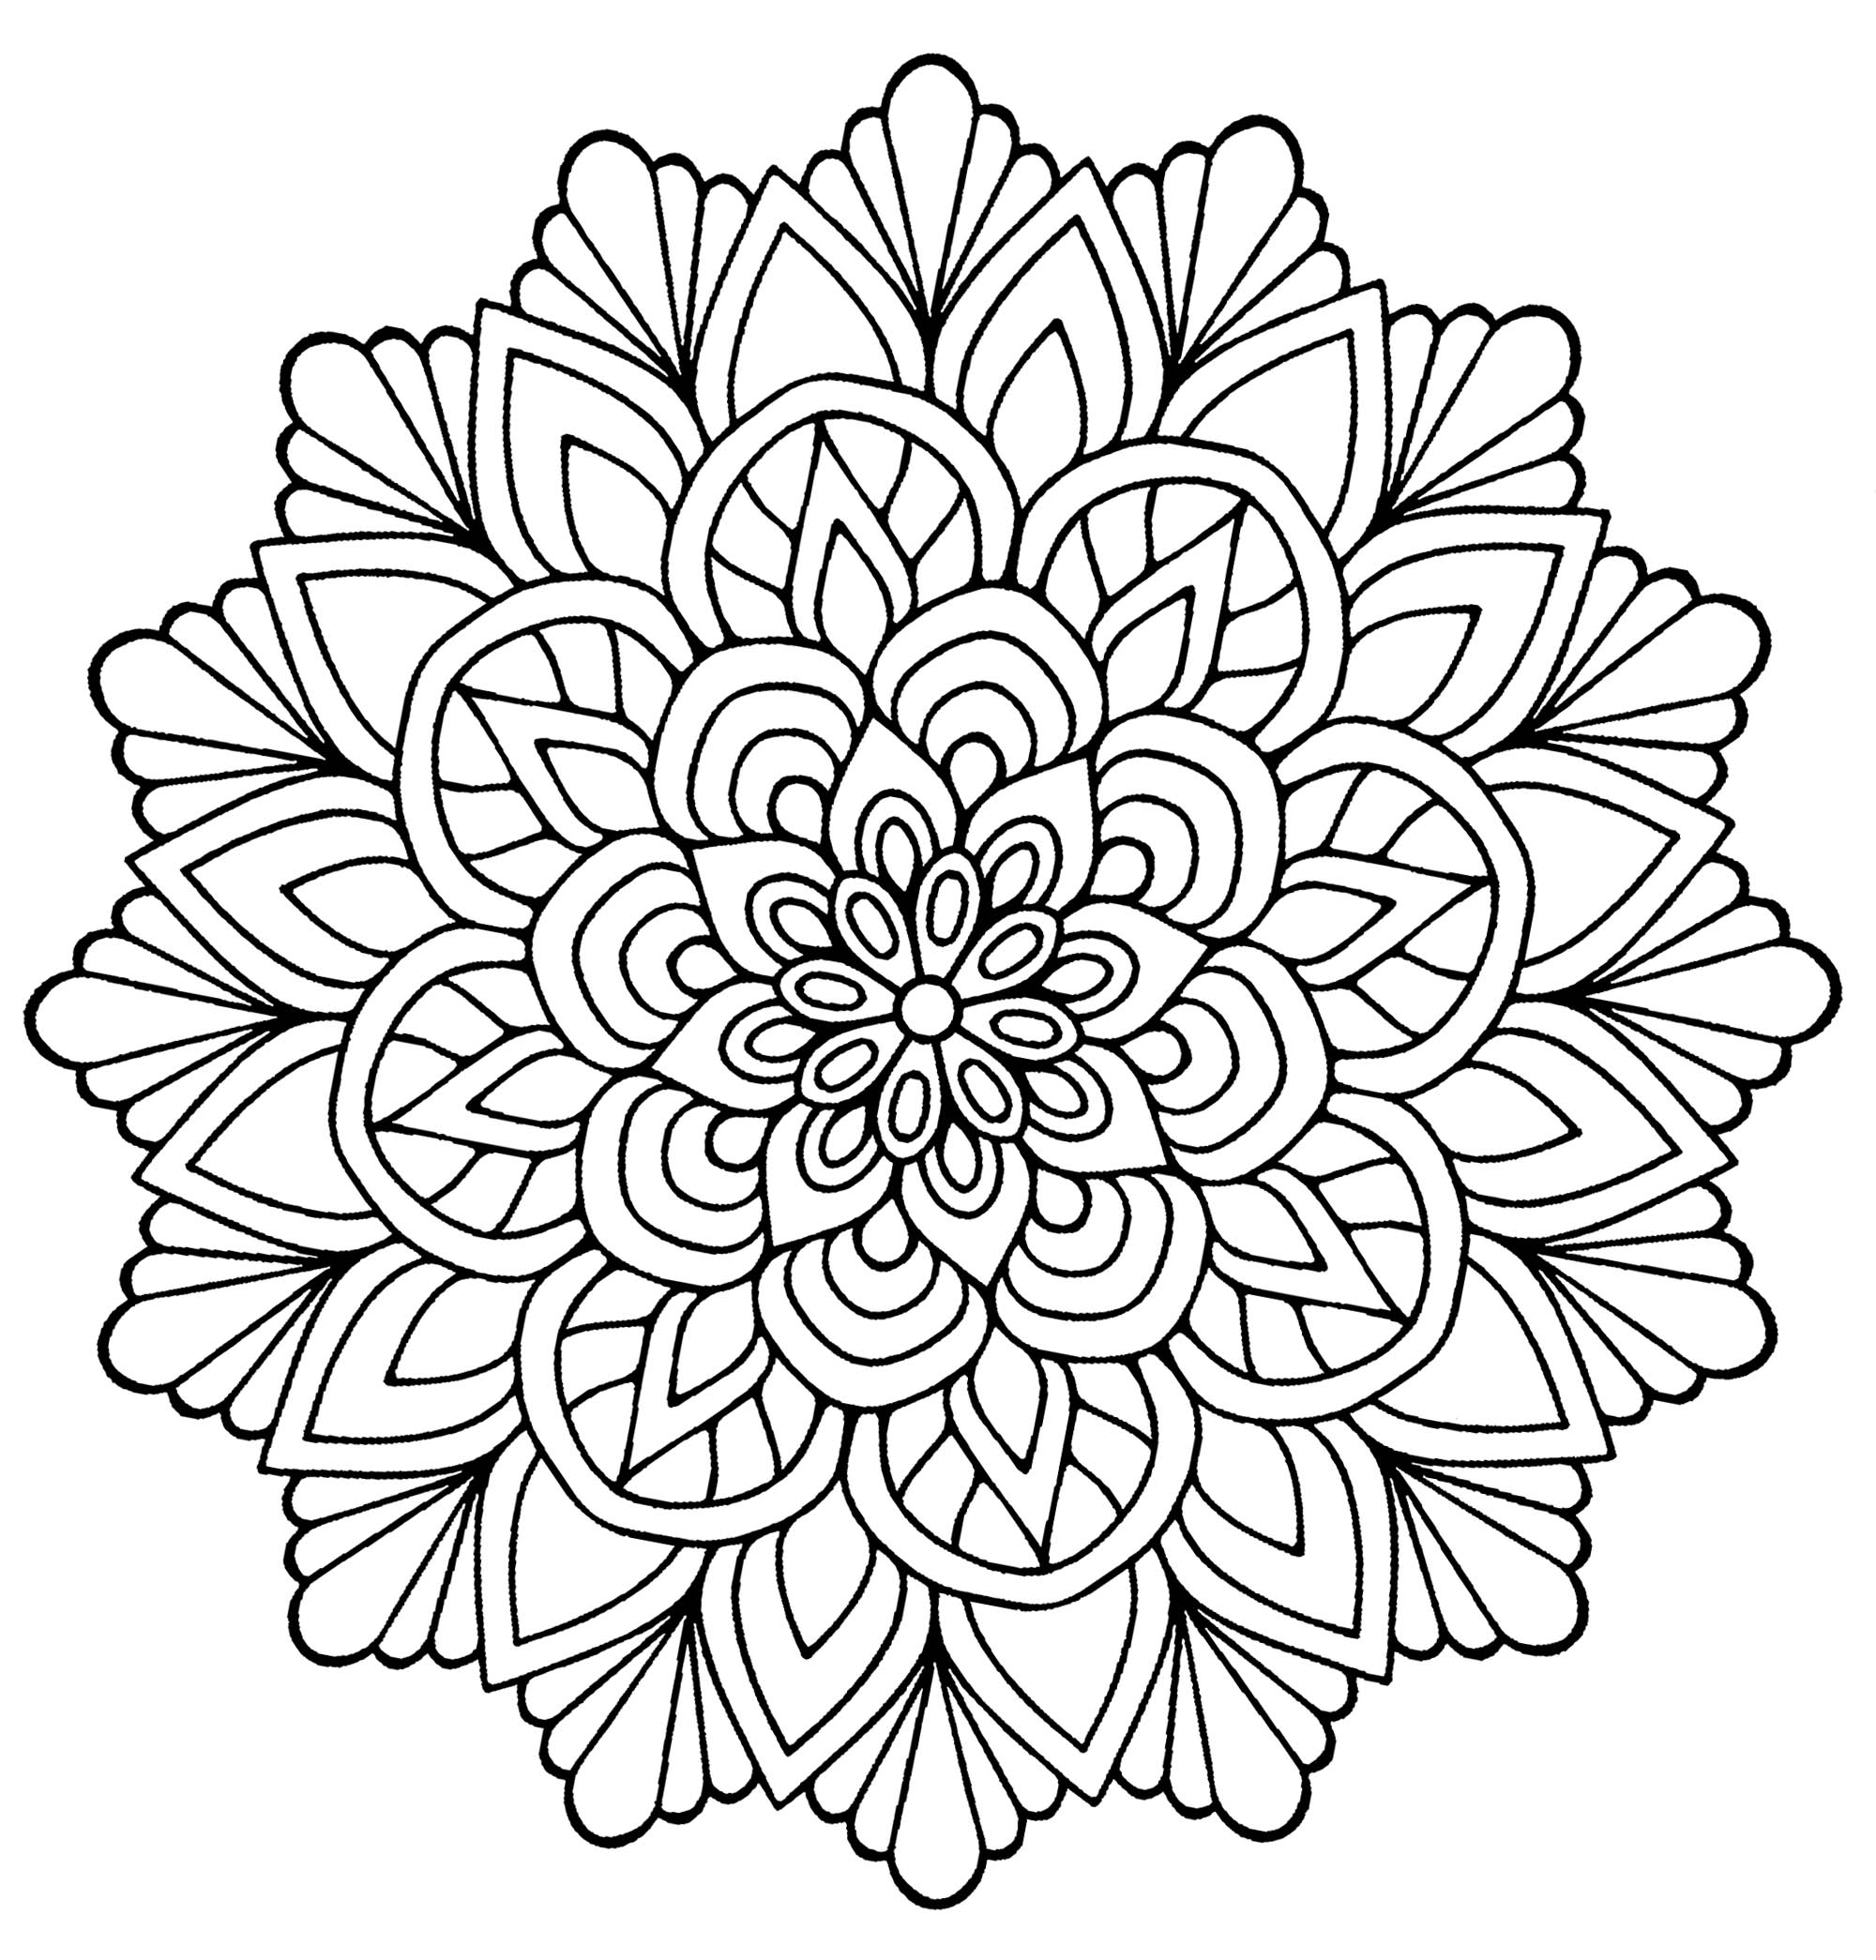 Mandala easy flower with leaves simple mandalas 100 Easy coloring books for adults